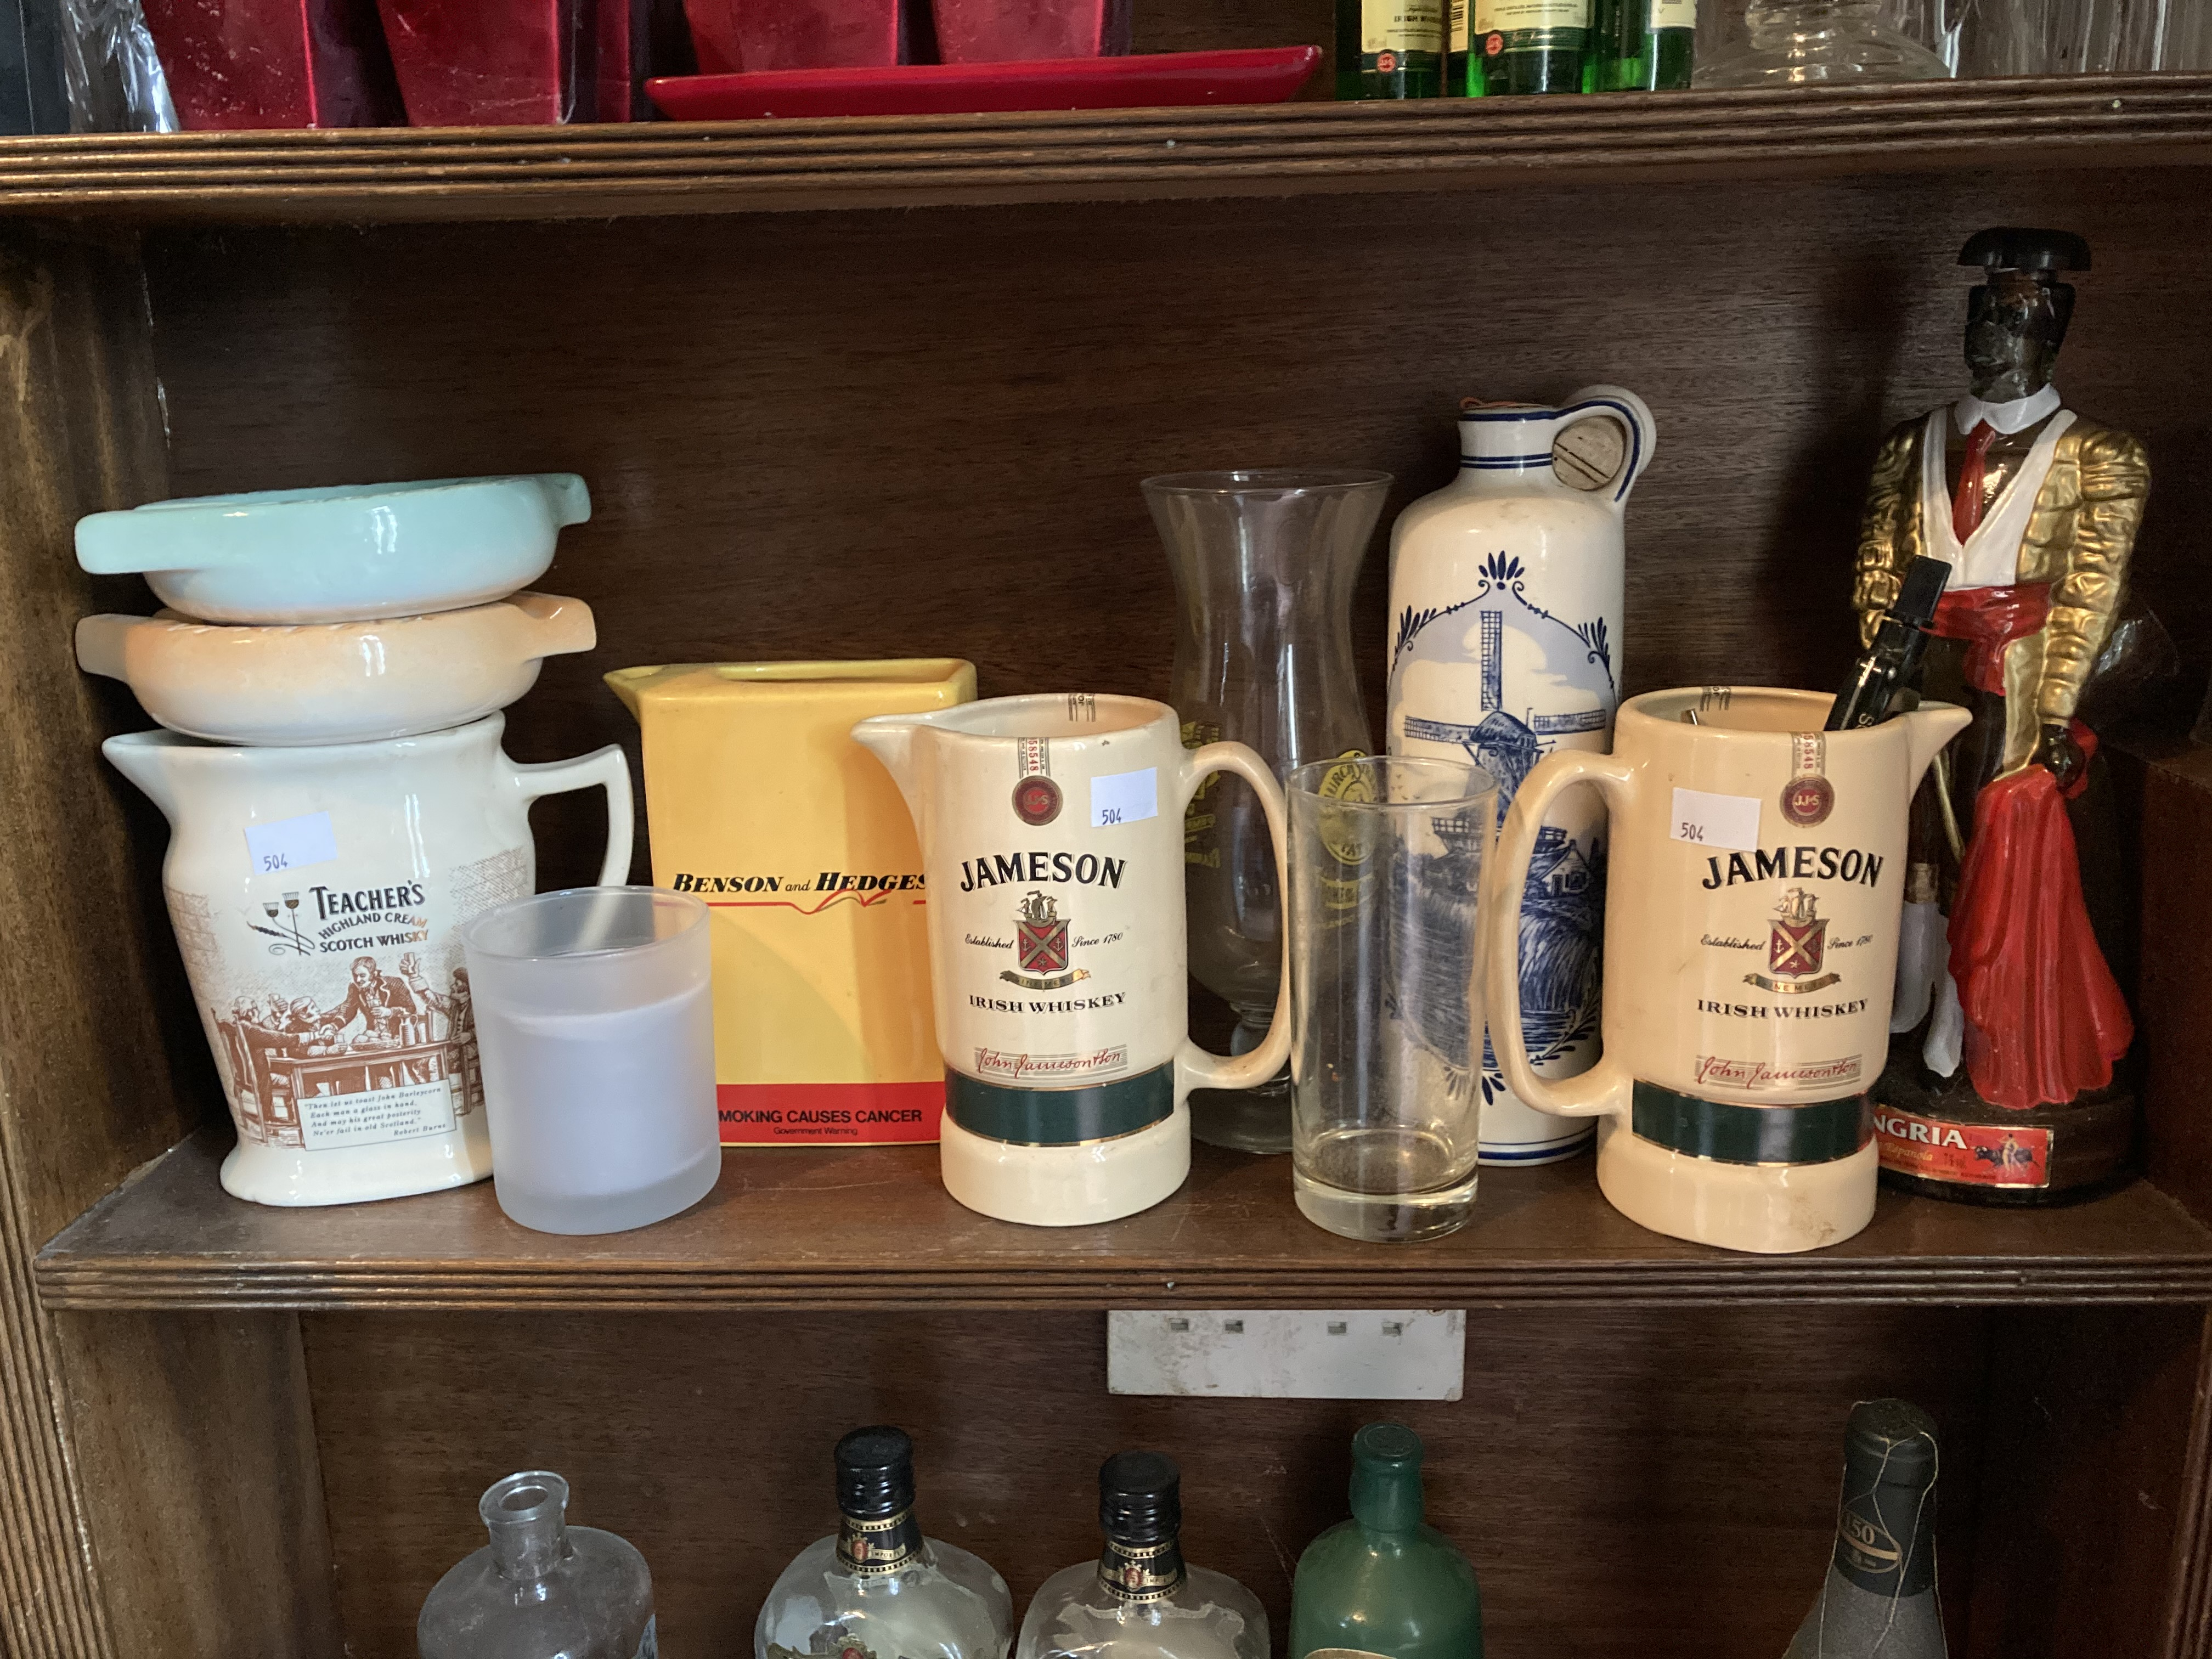 A collection of Jugs, Ashtrays, all labelled Jameson, Teachers, Benson & Hedges, Guinness Bucket,